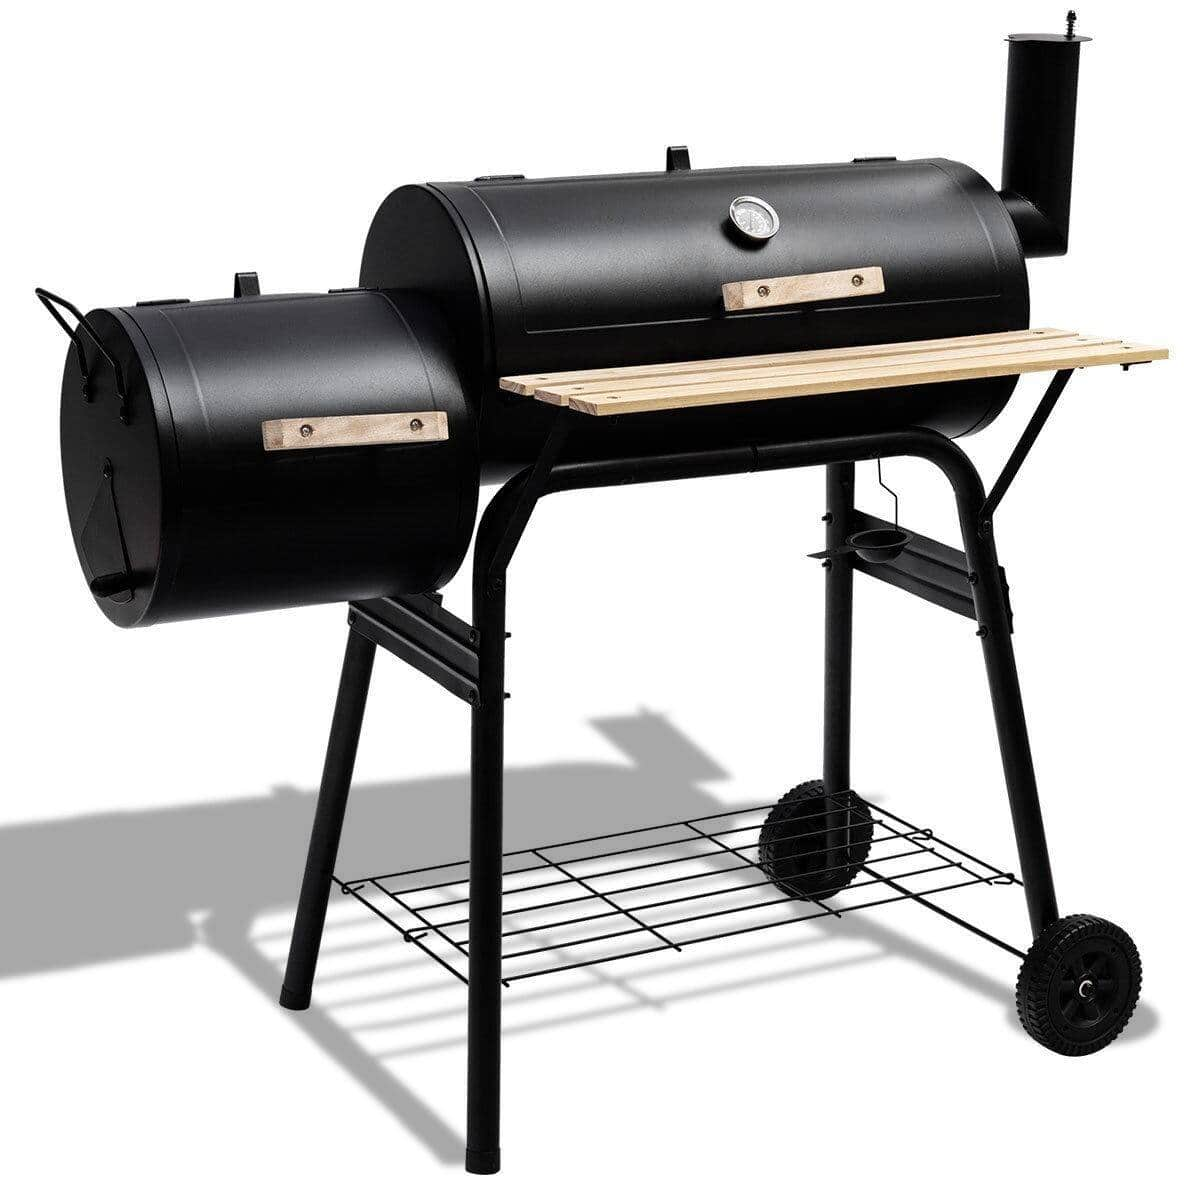 Costway Outdoor BBQ Grill Barbecue Pit Patio Cooker - $83.95 + Free Shipping